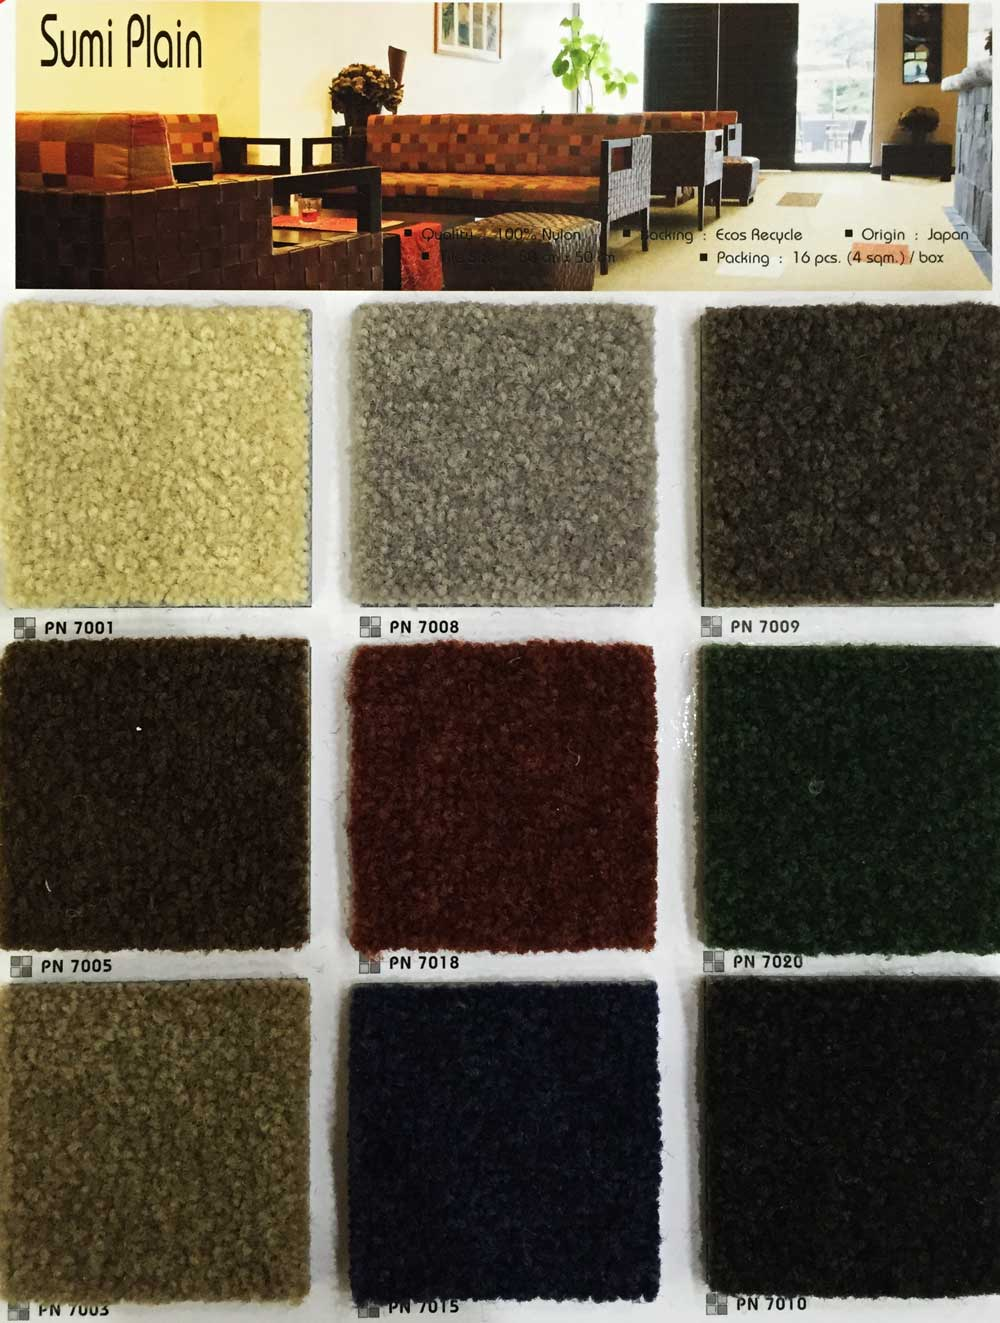 Categories Carpet Tile Product Name Sumi Plain Size 50cm X Quality 100 Nylon Backing Ecos Recycle Total Thickness 9 5mm